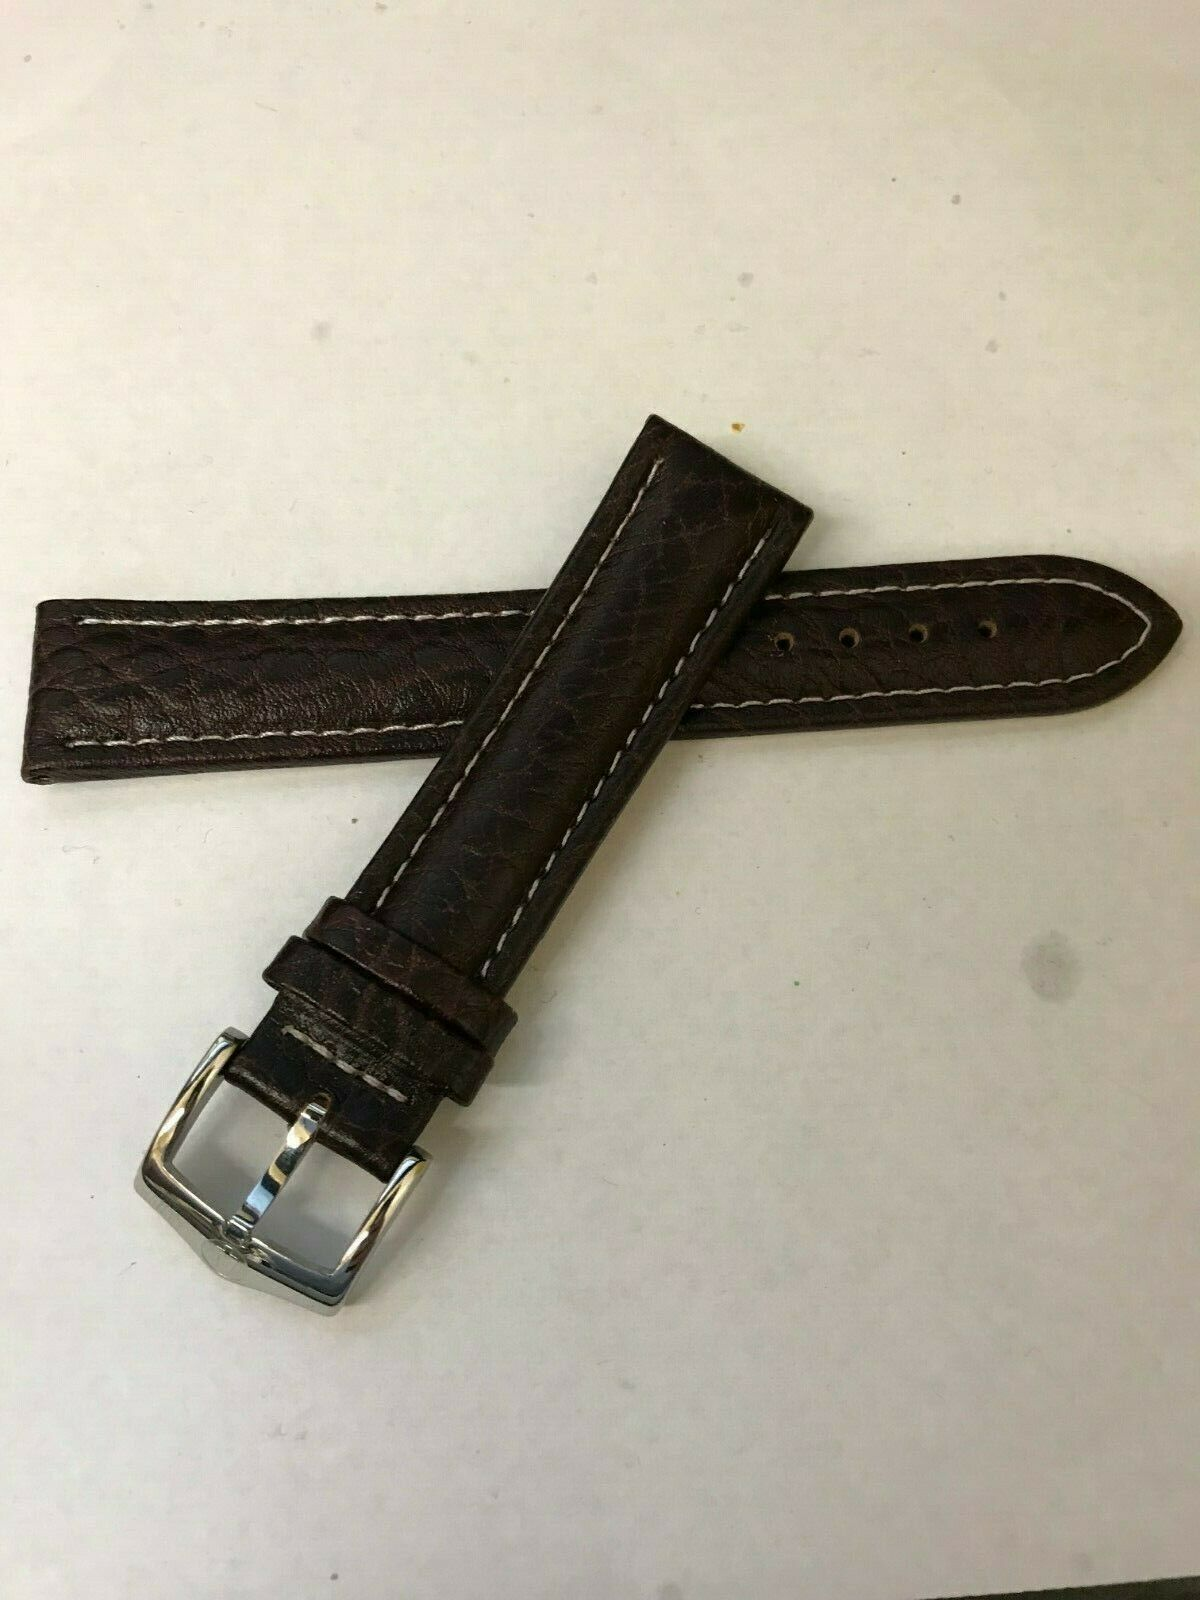 Primary image for NEW Bulova Brown Leather Silver Buckle 98C71 Watch Band Replacement Strap